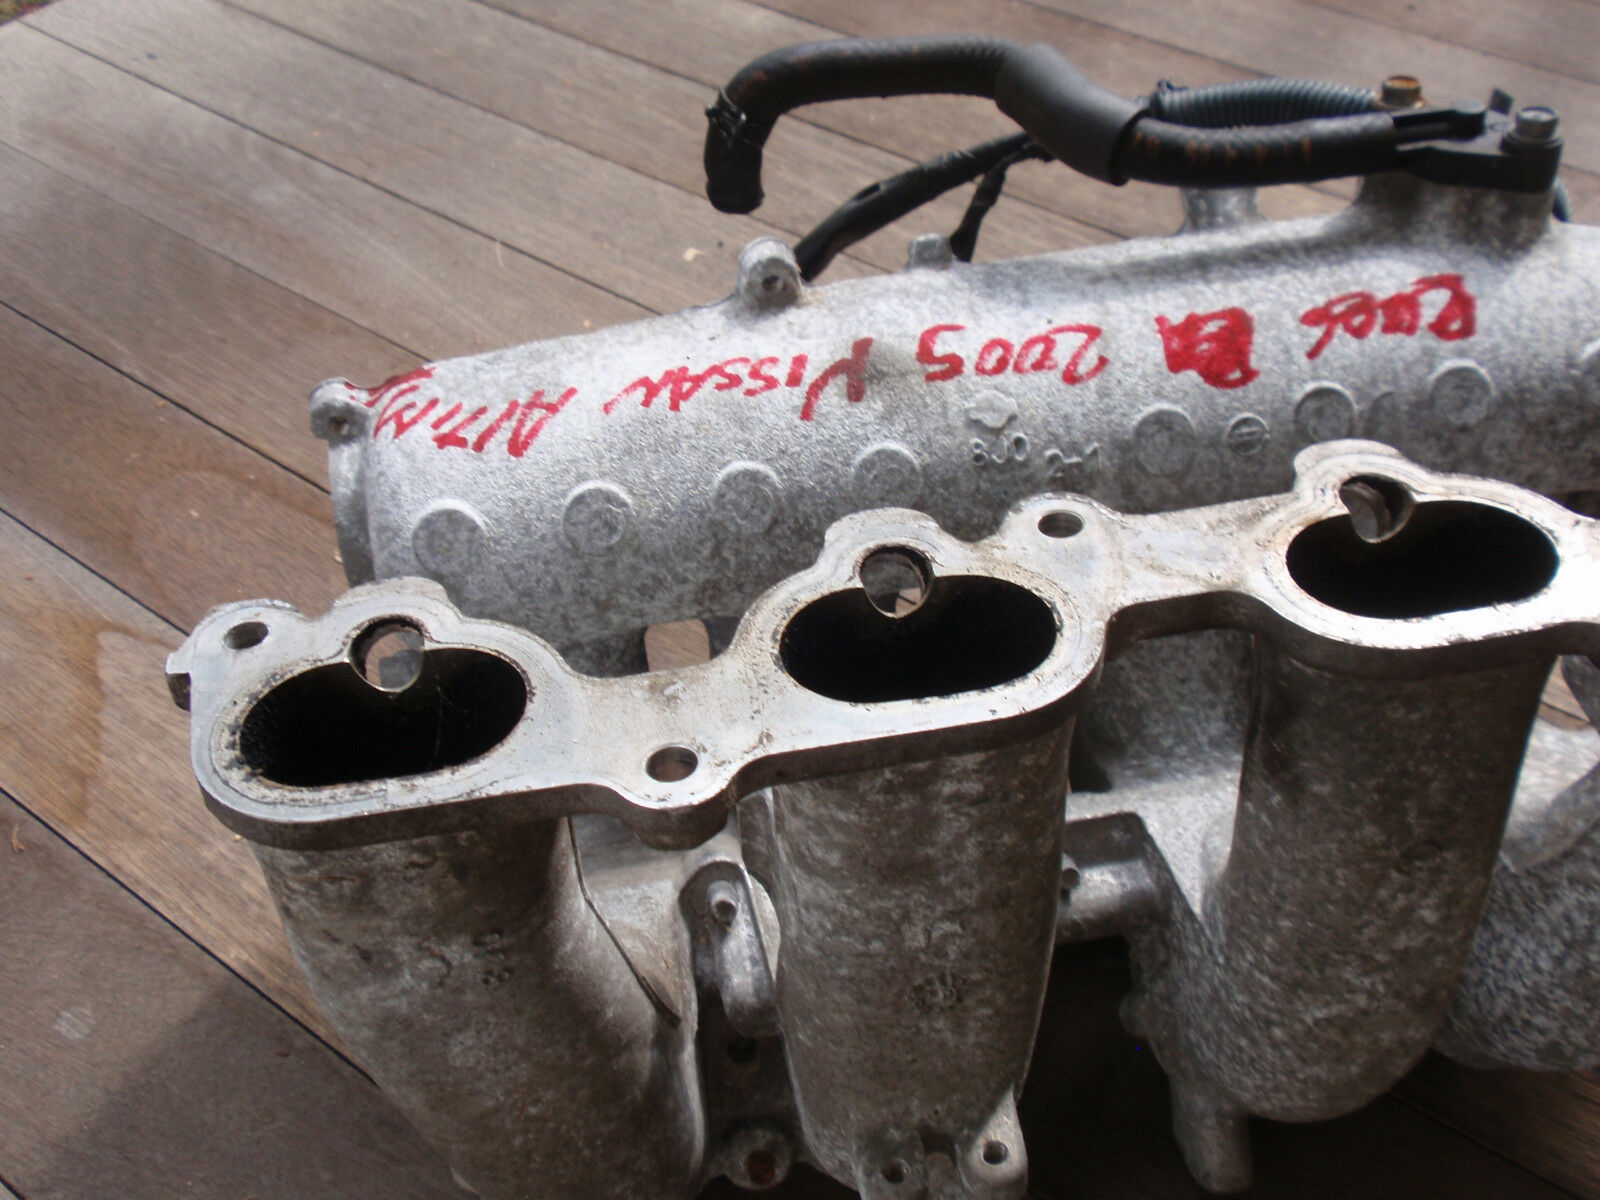 Used Nissan Altima Intake Manifolds for Sale